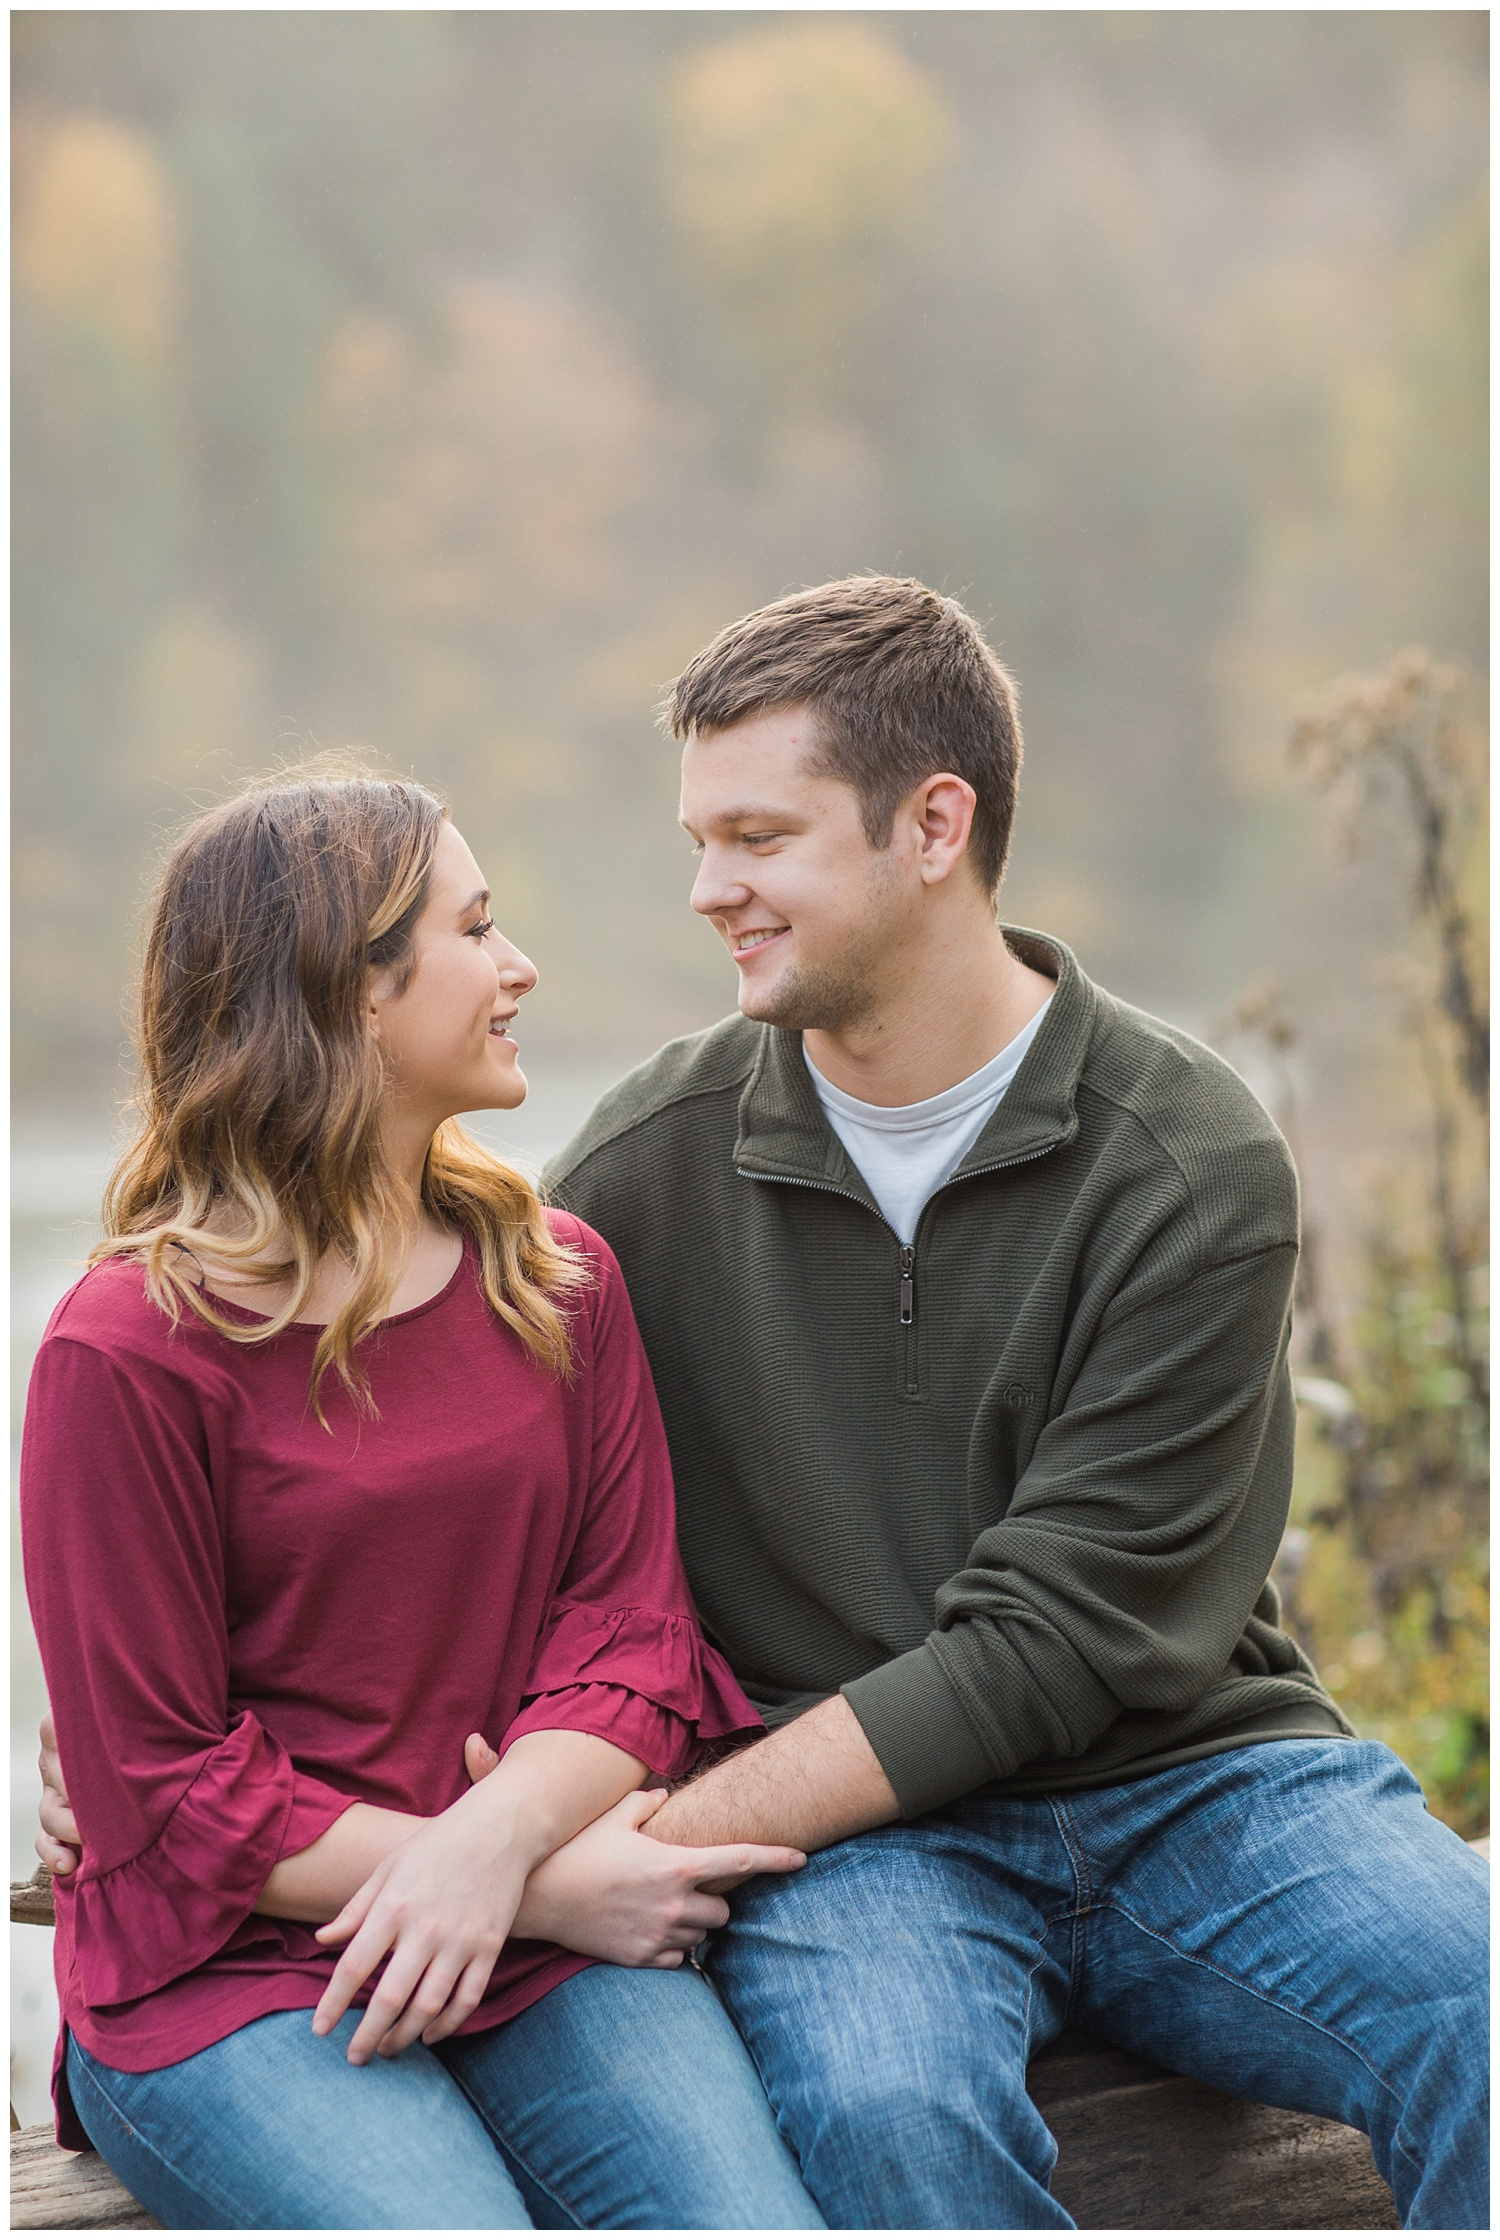 Couples session - Letchworth state park - Lass & Beau -180_Buffalo wedding photography.jpg